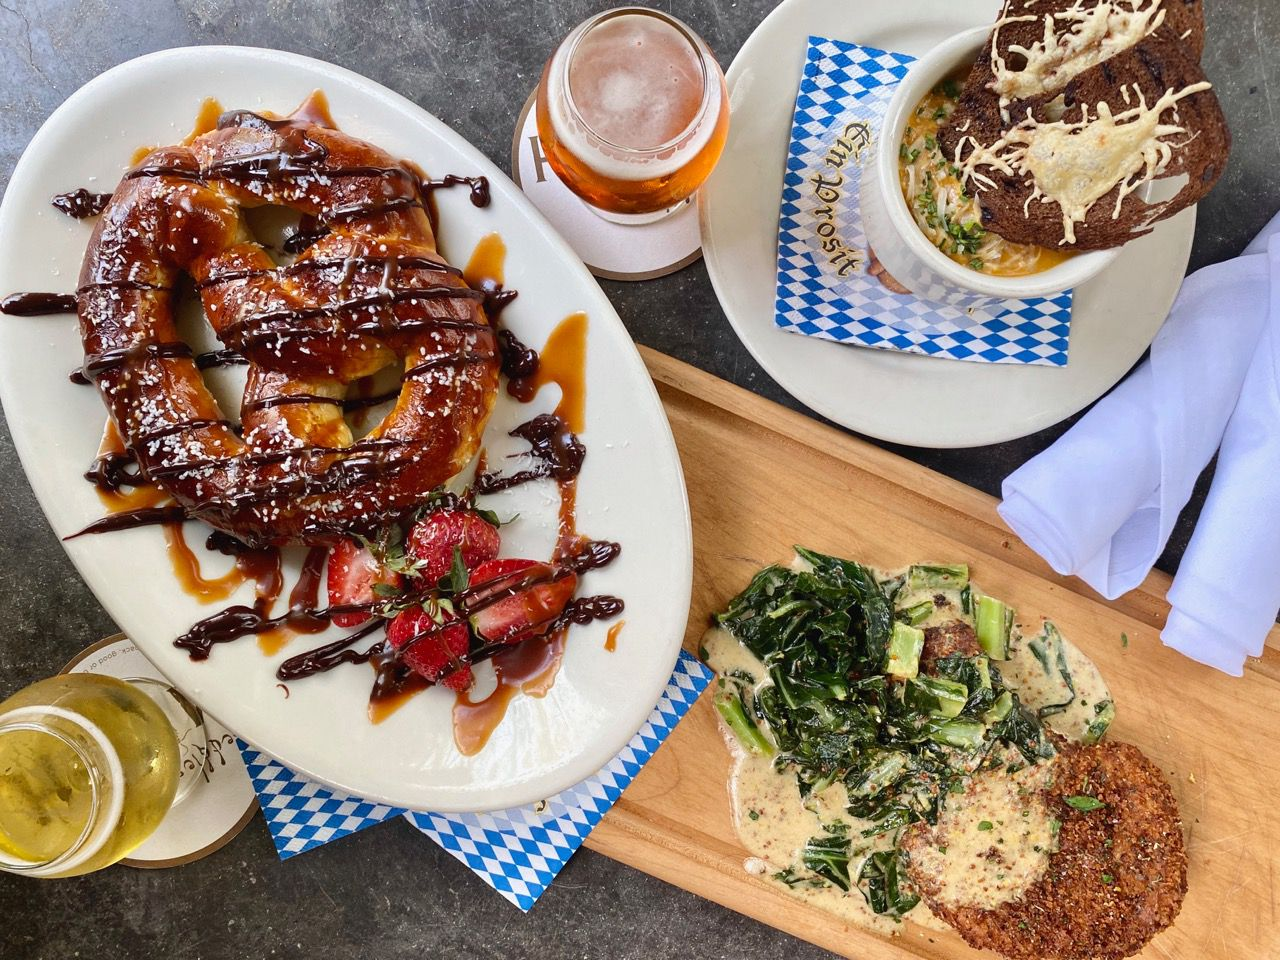 Meddlesome Moth in Dallas is offering an Oktoberfest menu featuring Oktoberfest beer flights, cheddar Bock soup with pumpernickel crostini, pork schnitzel with stone mustard creamed collard greens and parmesan potatoes, and chocolate covered pretzels with caramel and toasted coconut.